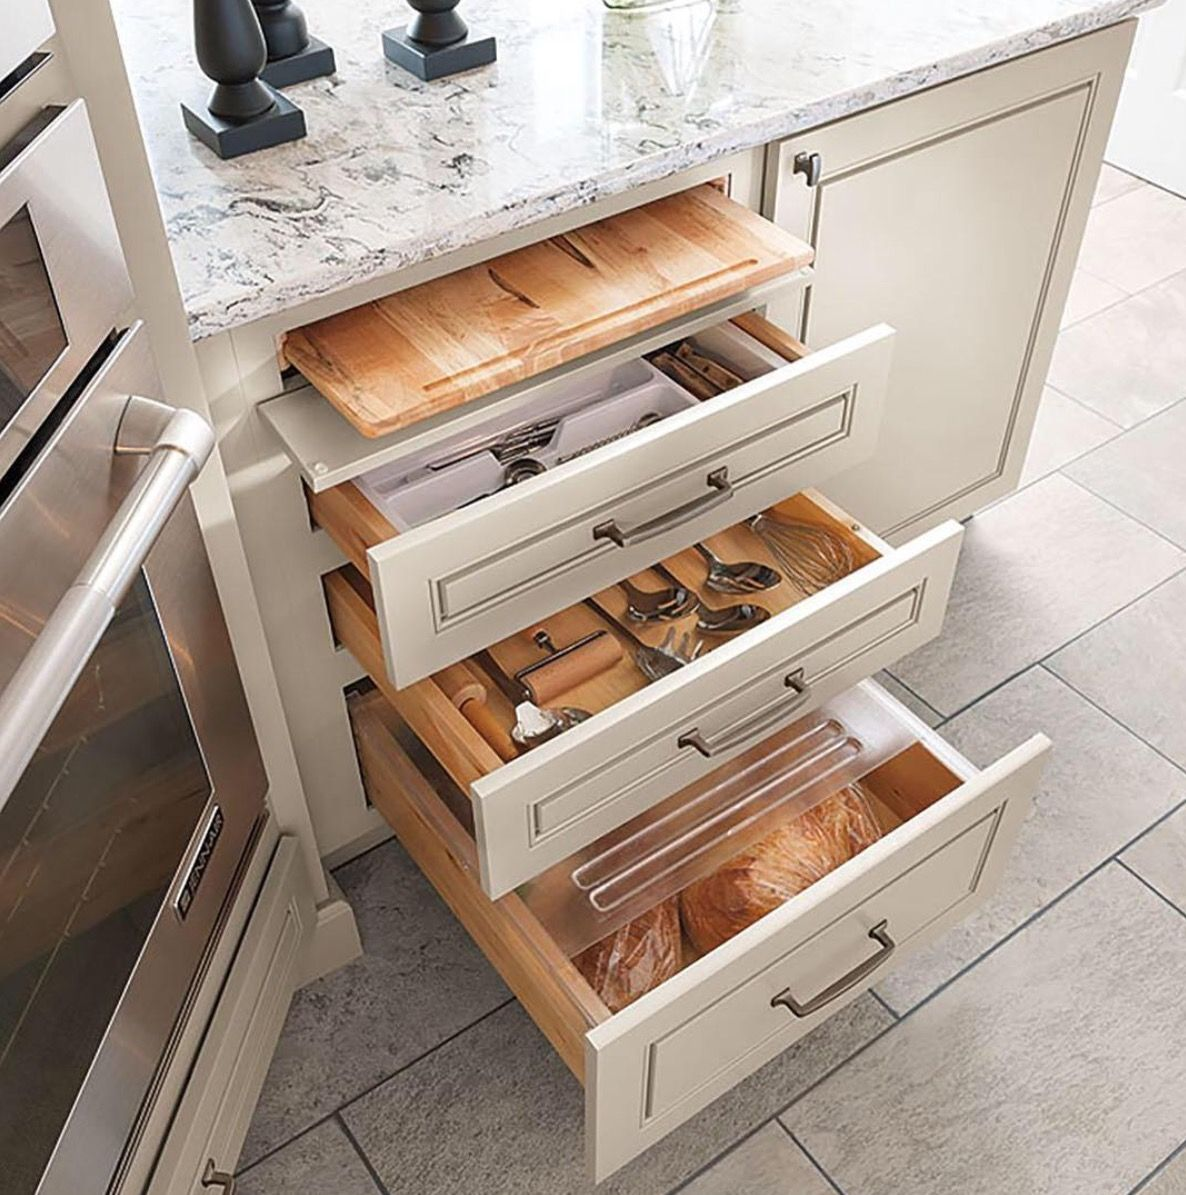 Cabinets with organization solutions like the Scoop Drawer ...